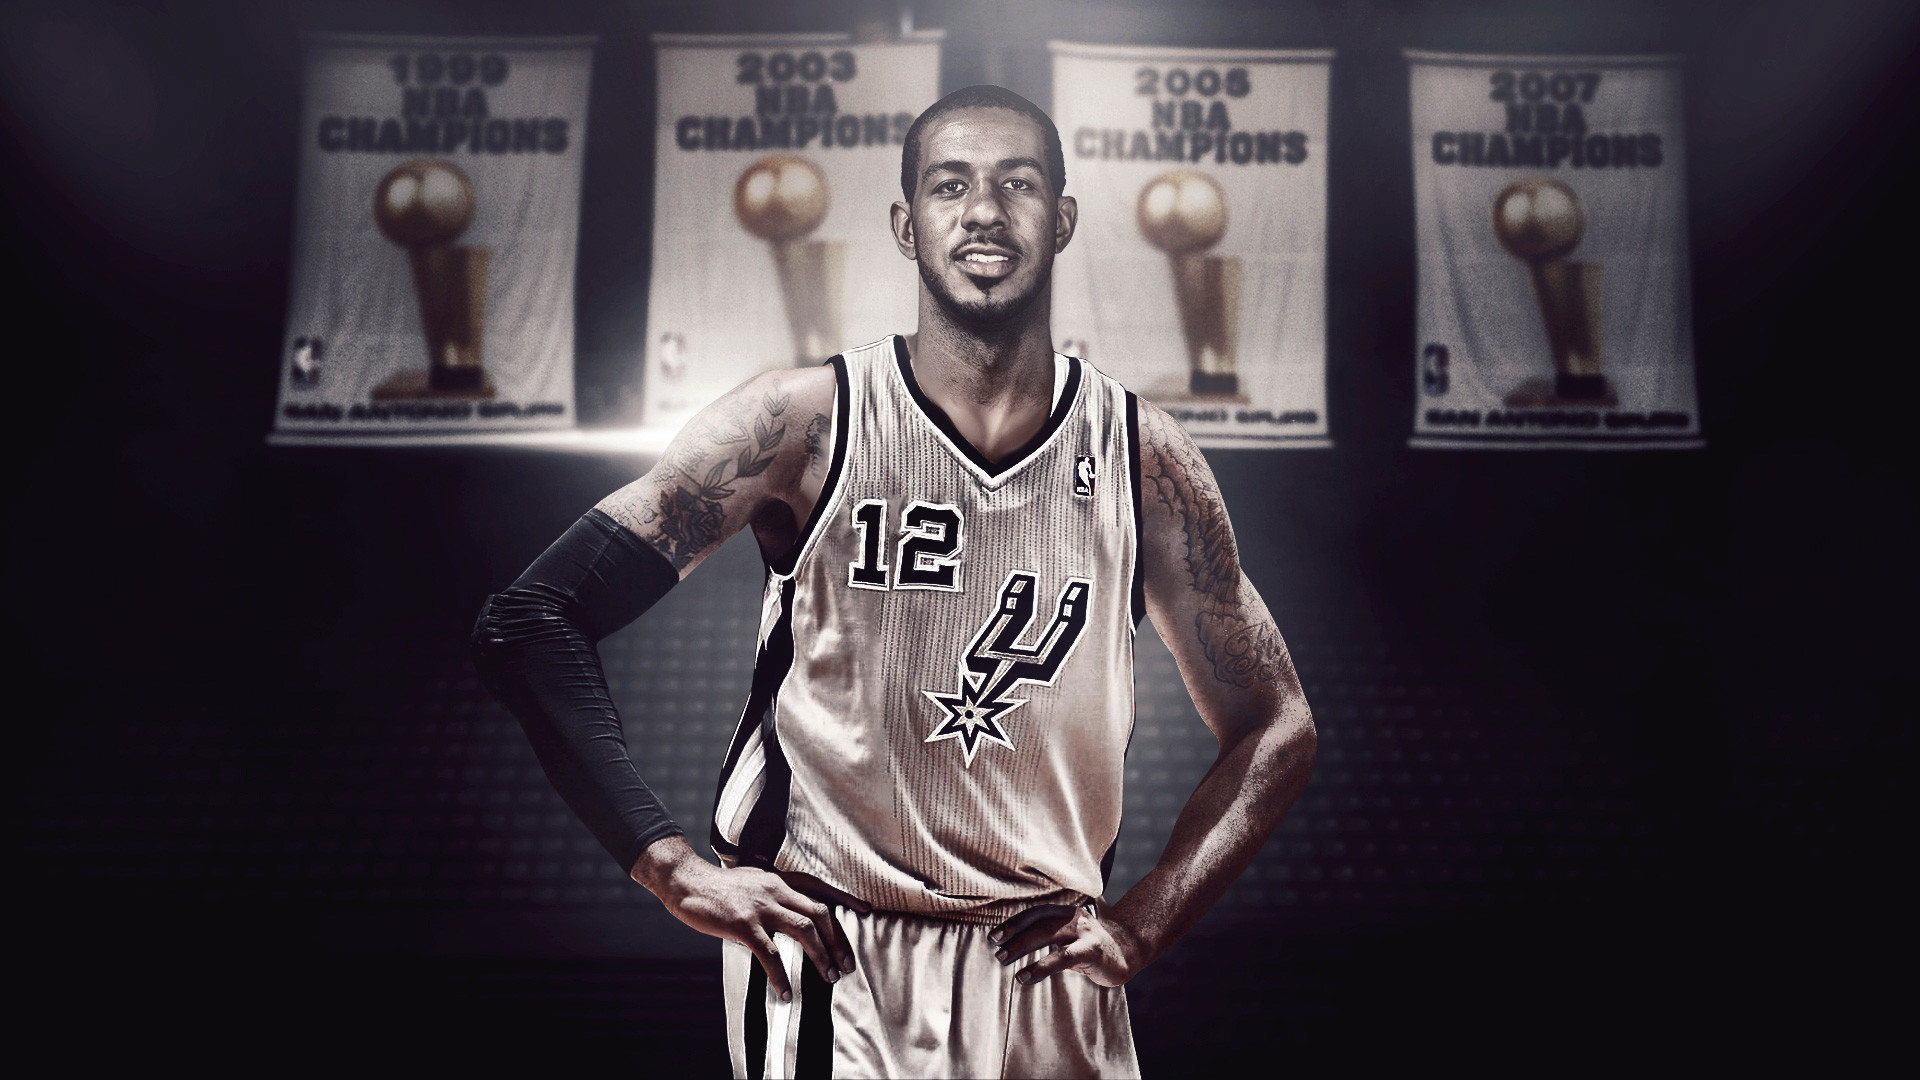 2880x1800 Kawhi Leonard 2014 NBA Finals MVP Wallpaper